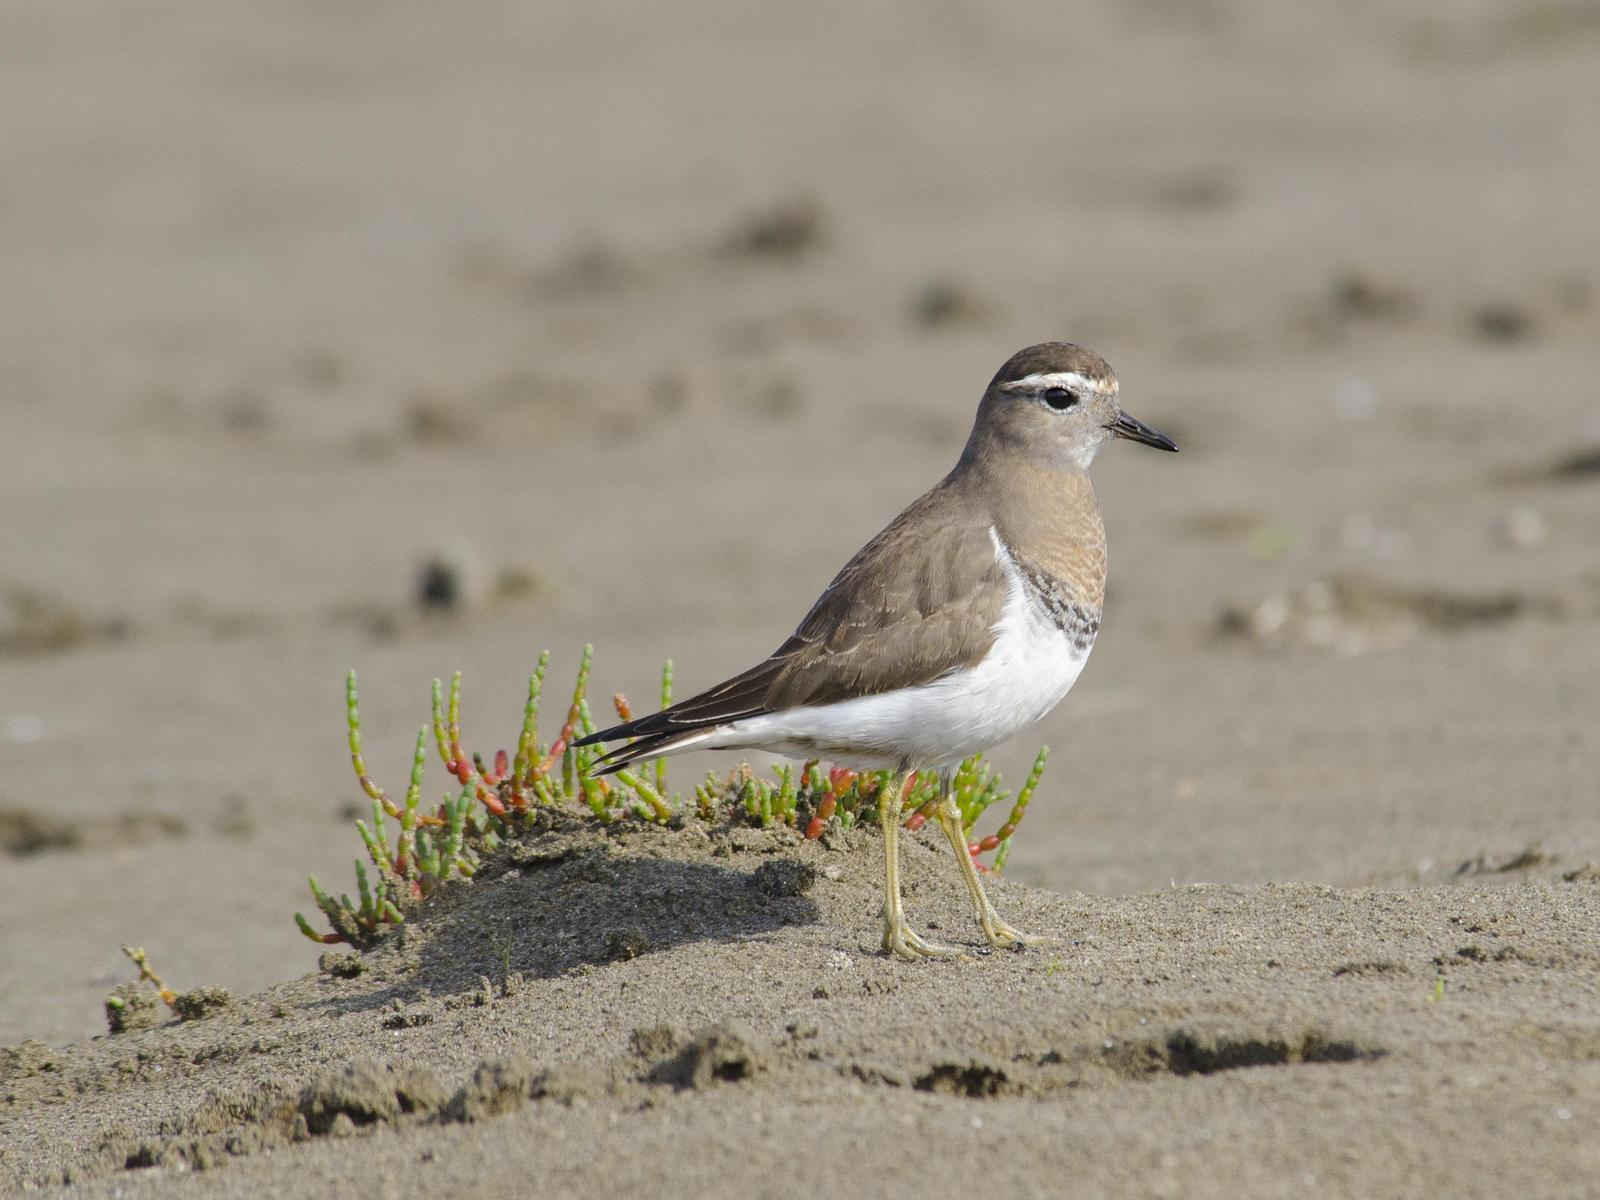 Rufous-chested Dotterel Photo by Cristian  Pinto